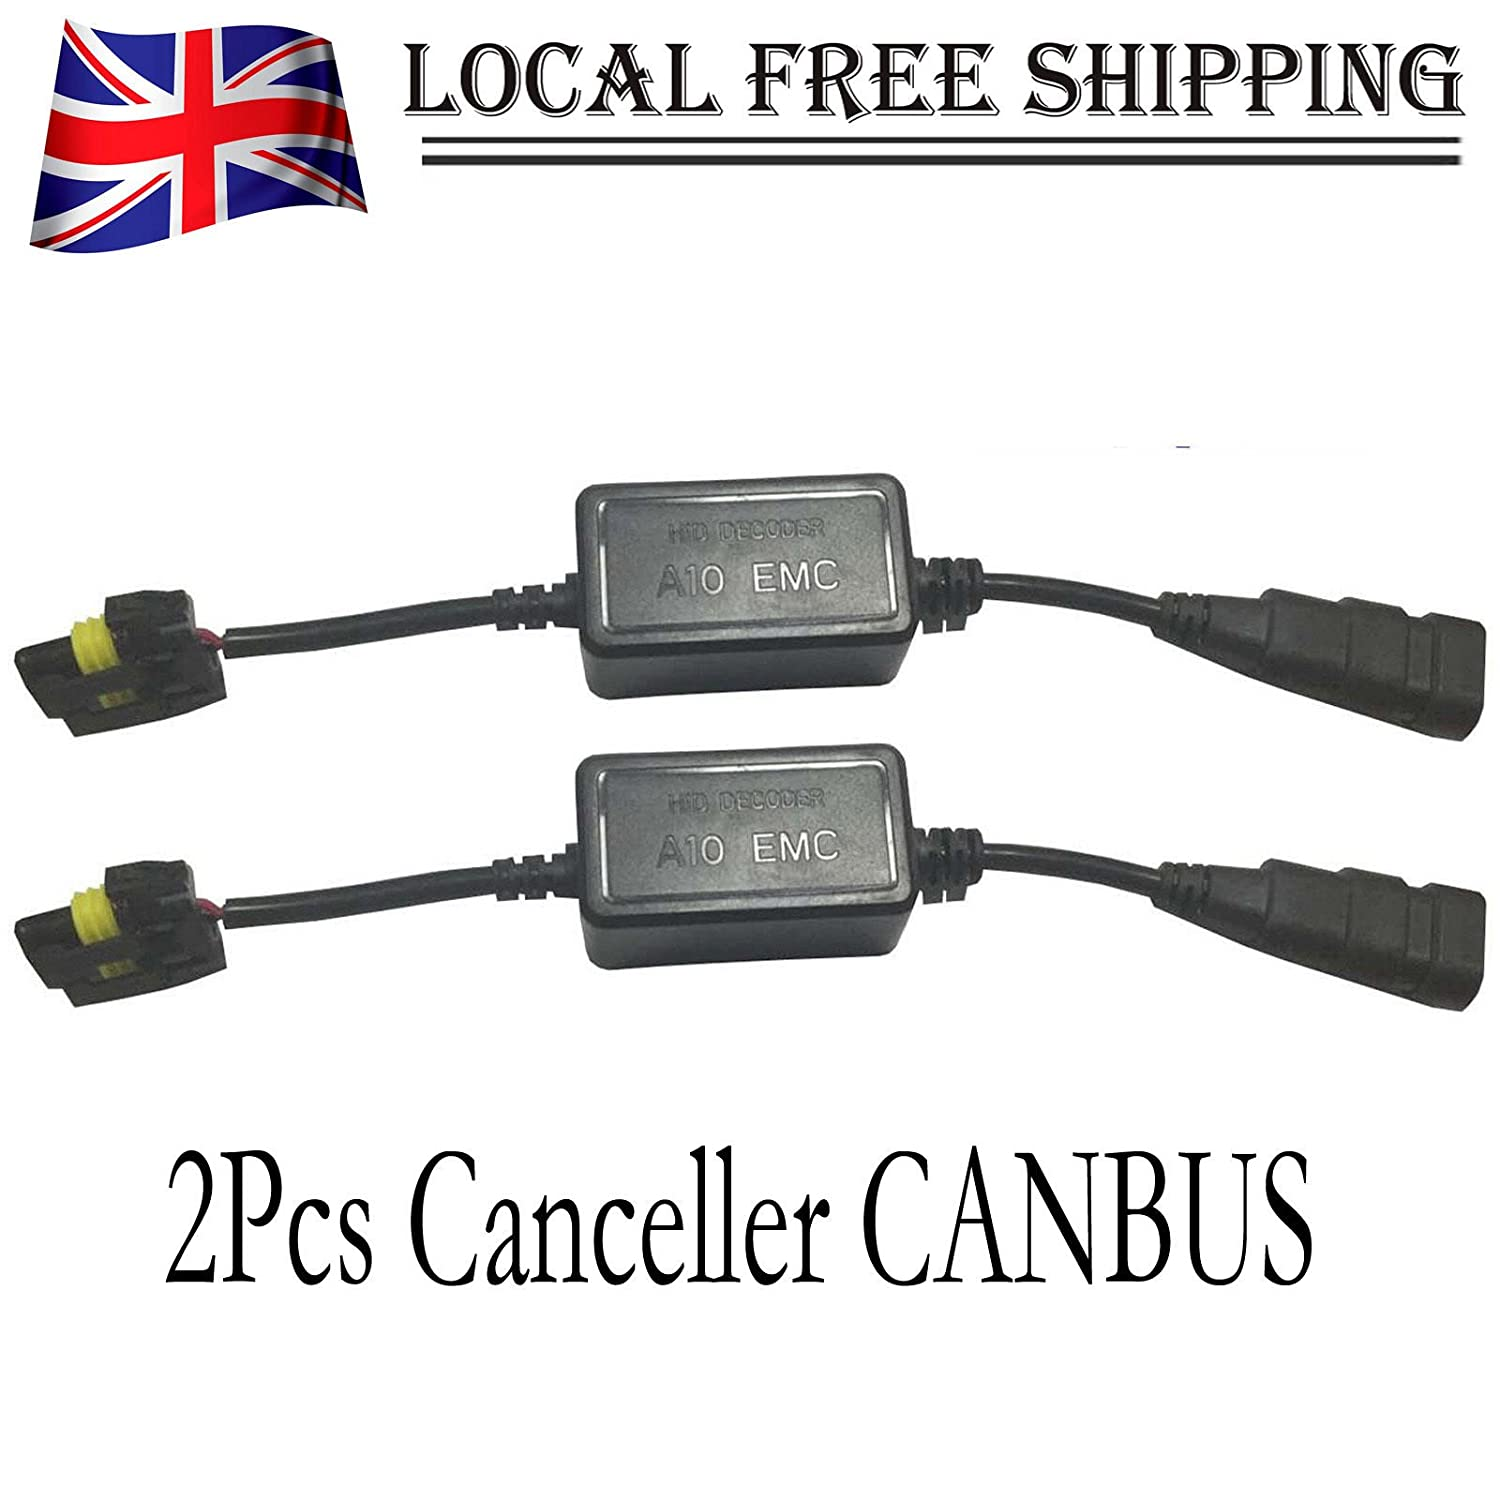 Canbus Error Canceller Decoder HID Xenon Capacitor For H1 H3 H4 H7 H11 9005 9006 Autofather Factory